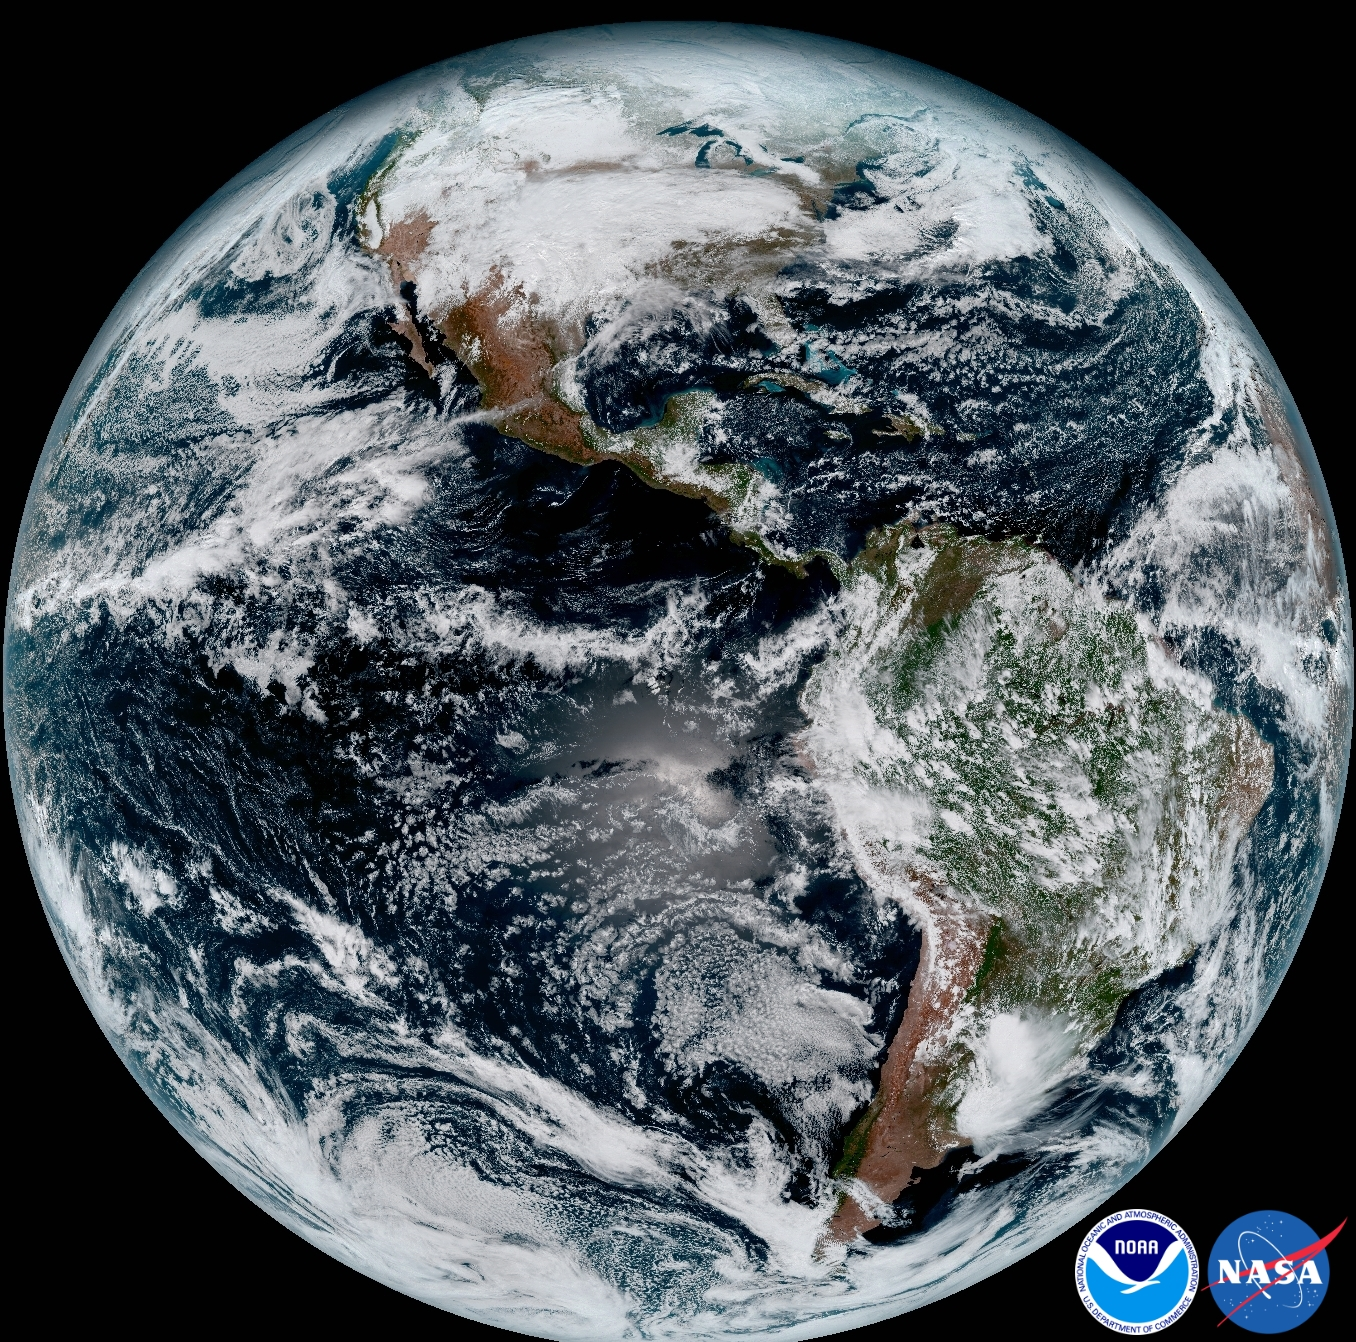 The release of the first images from NOAA's newest satellite, GOES-16, is the latest step in a new age of weather satellites. This composite color full-disk visible image is from 1:07 p.m. EDT on Jan. 15, 2017, and was created using several of the 16 spectral channels available on the GOES-16 Advanced Baseline Imager (ABI) instrument. The image shows North and South America and the surrounding oceans. GOES-16 observes Earth from an equatorial view approximately 22,300 miles high, creating full disk images like these, extending from the coast of West Africa, to Guam, and everything in between. Image Credit: NOAA/NASA